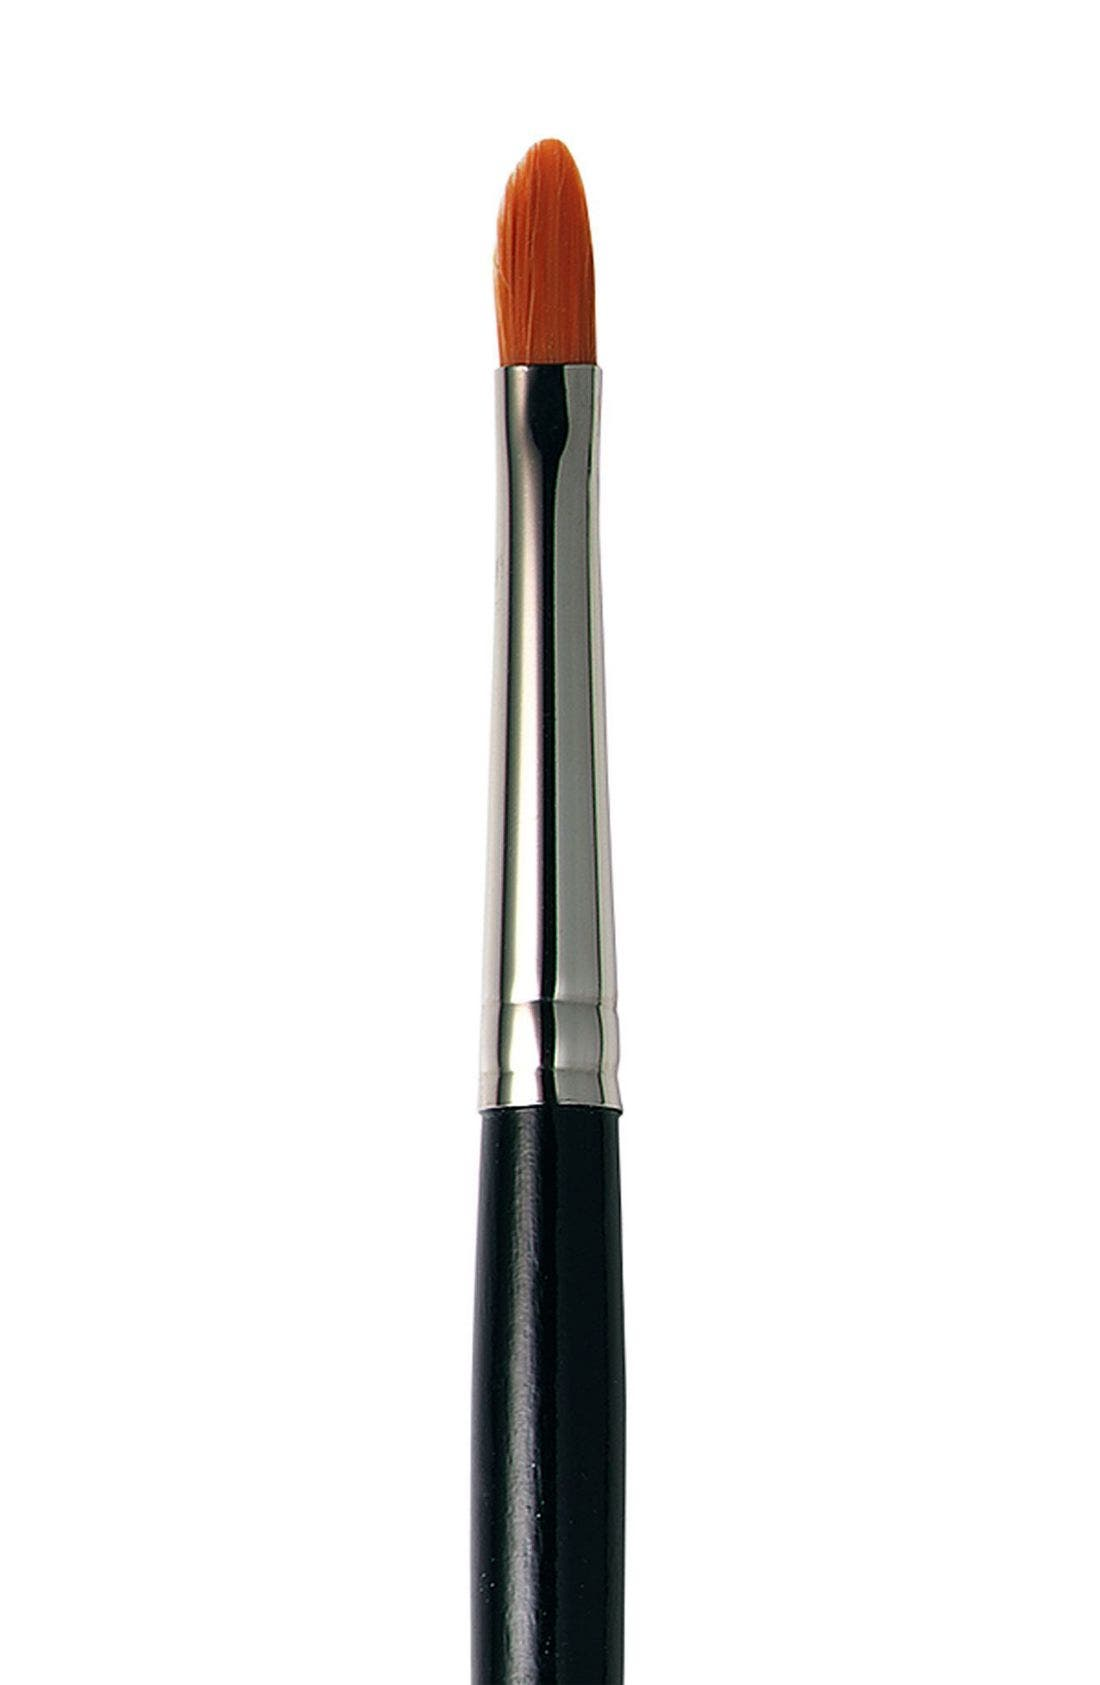 Laura Mercier Secret Camouflage Brush - Long